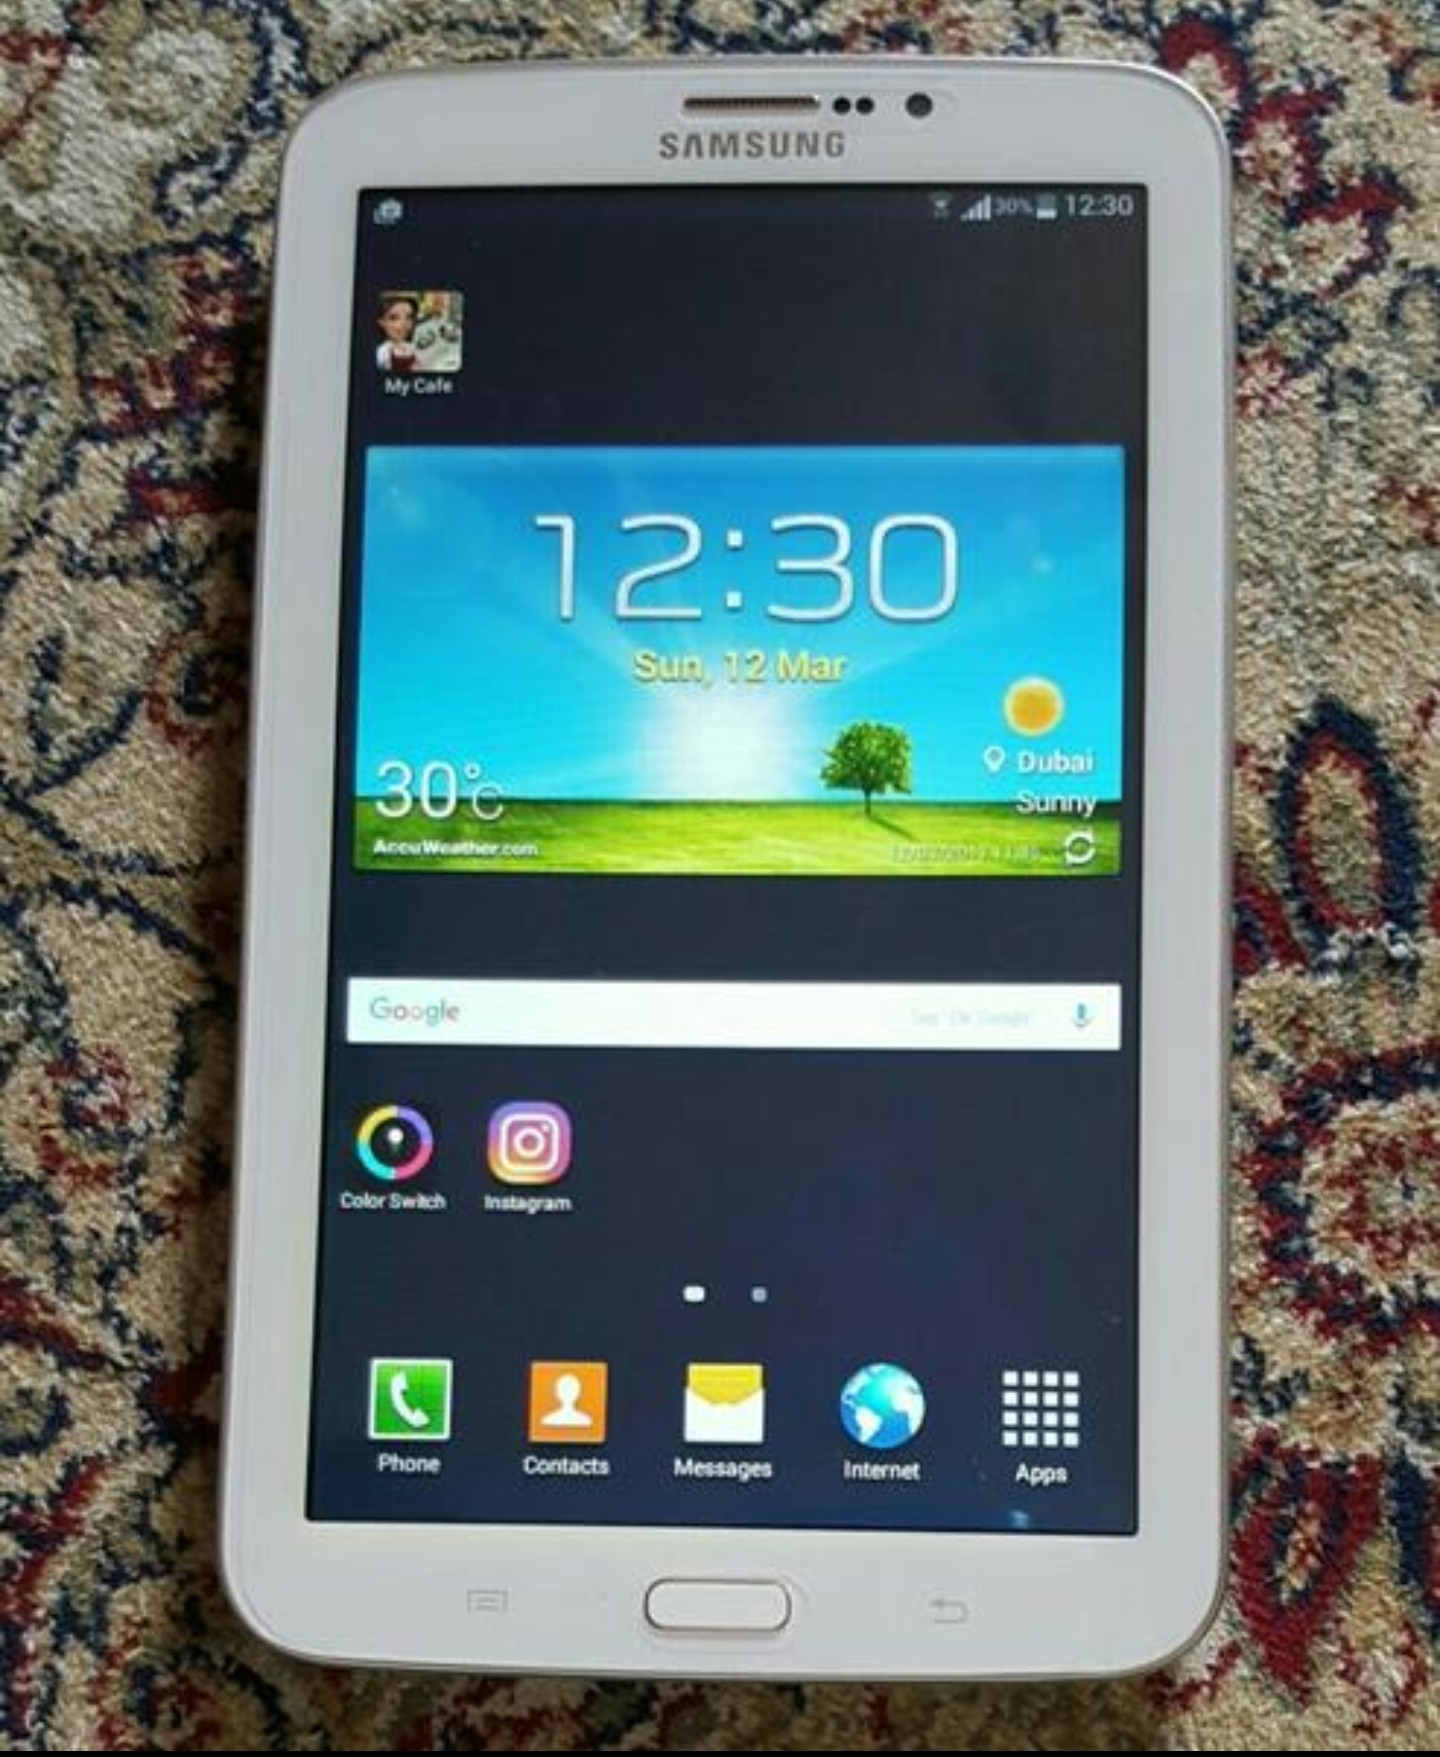 Samsung Galaxy Tab 3 And No Box Just Charger And Used Once Or Twice